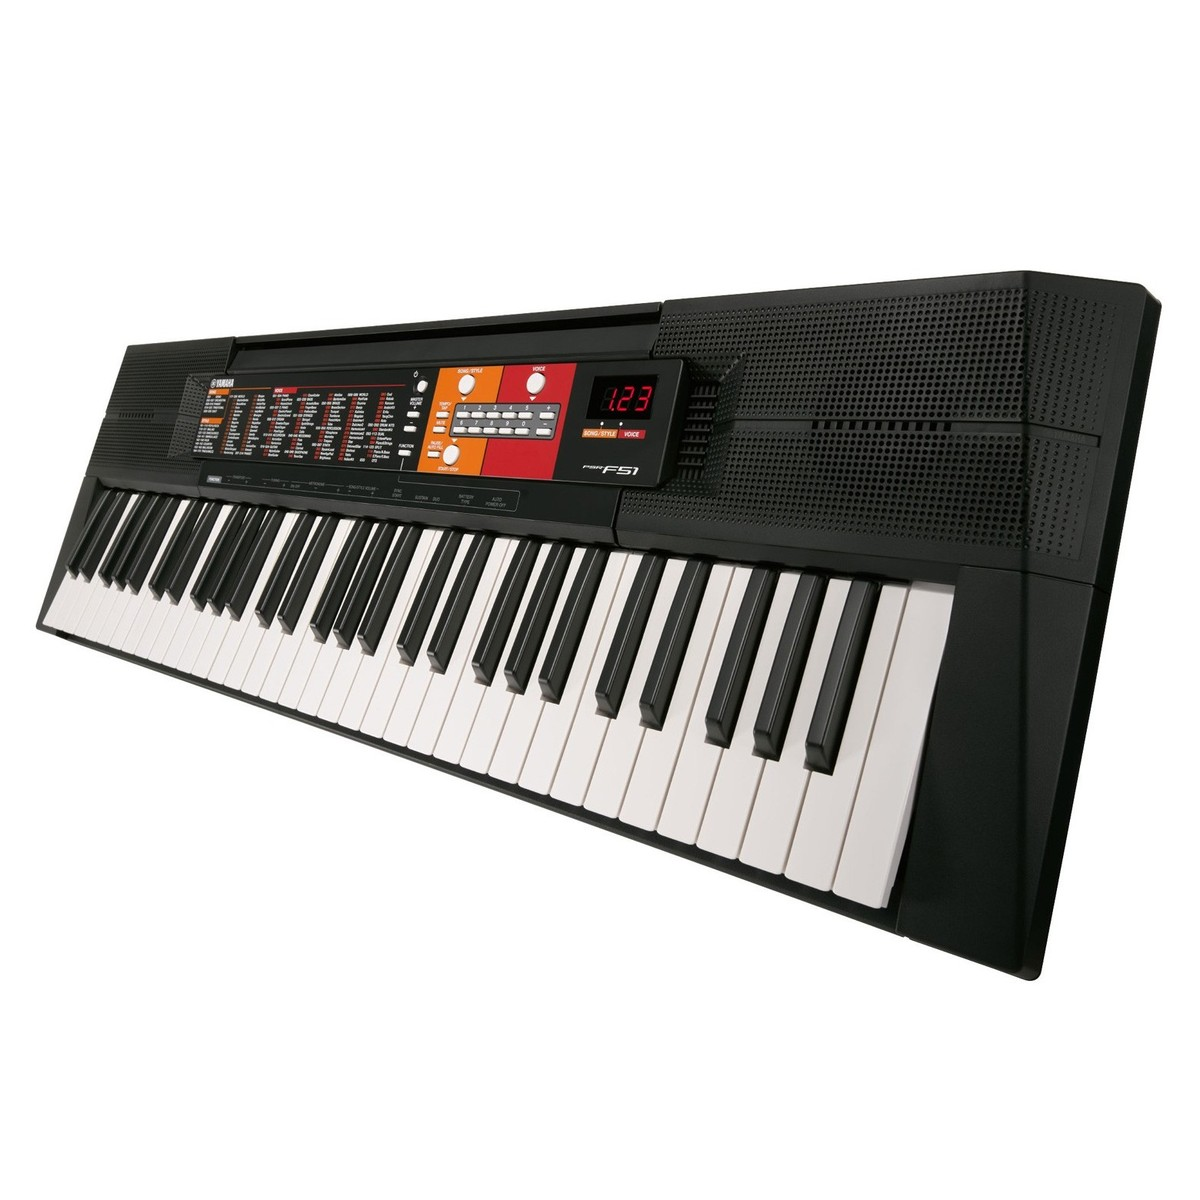 yamaha psr f51 portable keyboard at. Black Bedroom Furniture Sets. Home Design Ideas